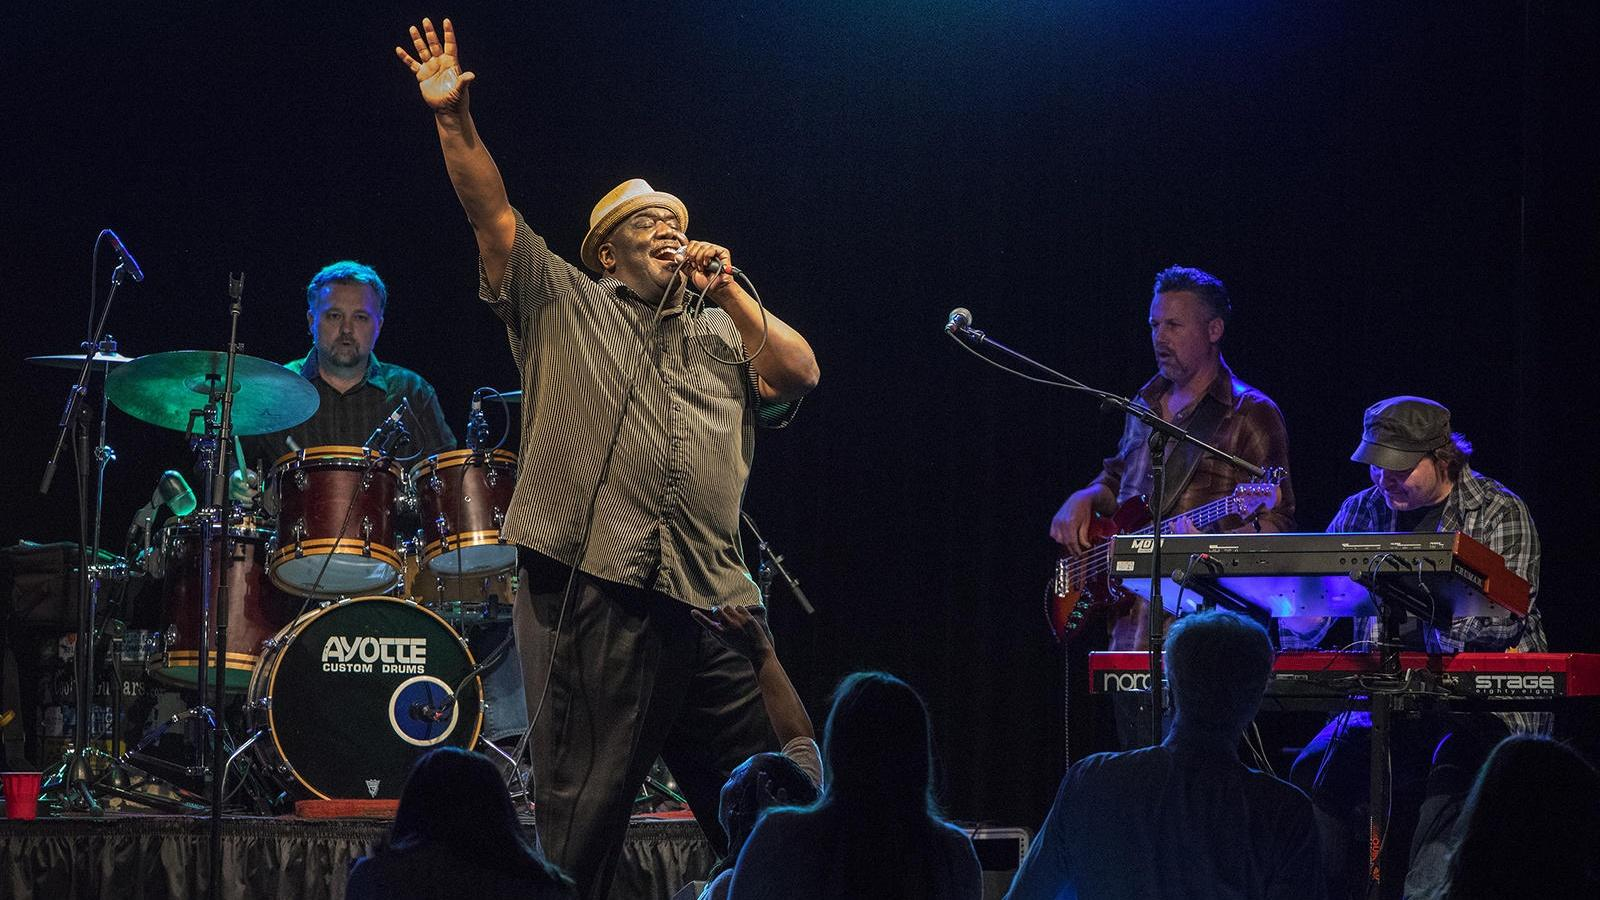 A sellout crowd attended WBFO's Buffalo Blues Bash on April 22 with headliner was Altered Five Blues Band